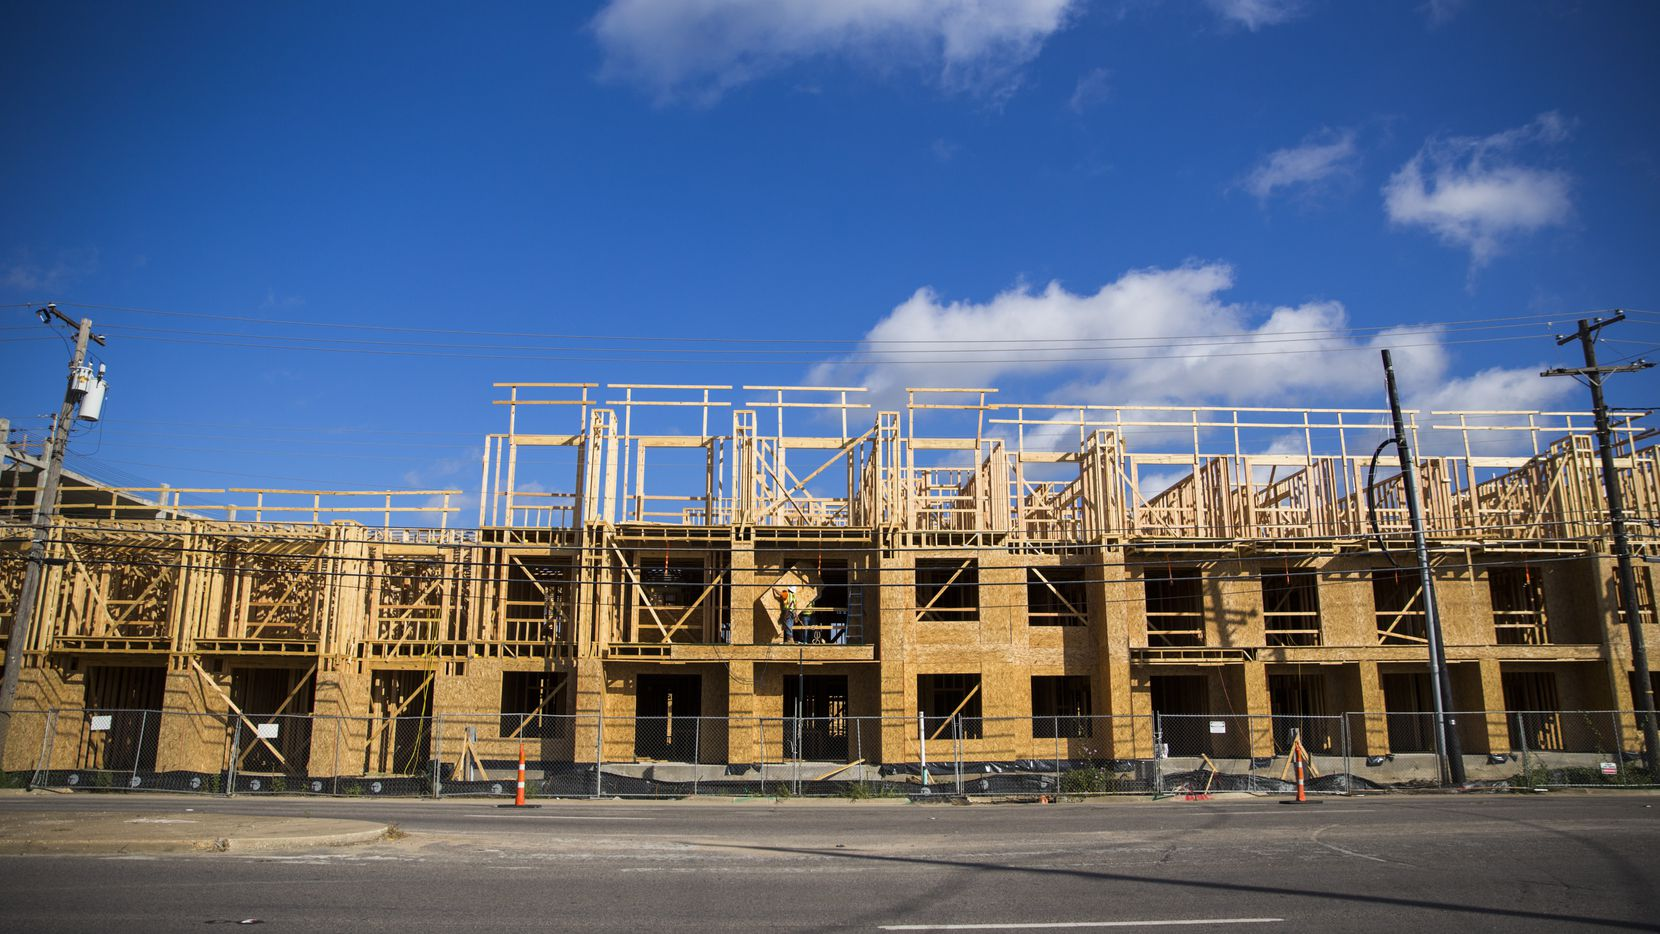 Almost 50,000 apartments are being built in North Texas, more than any other U.S. market.